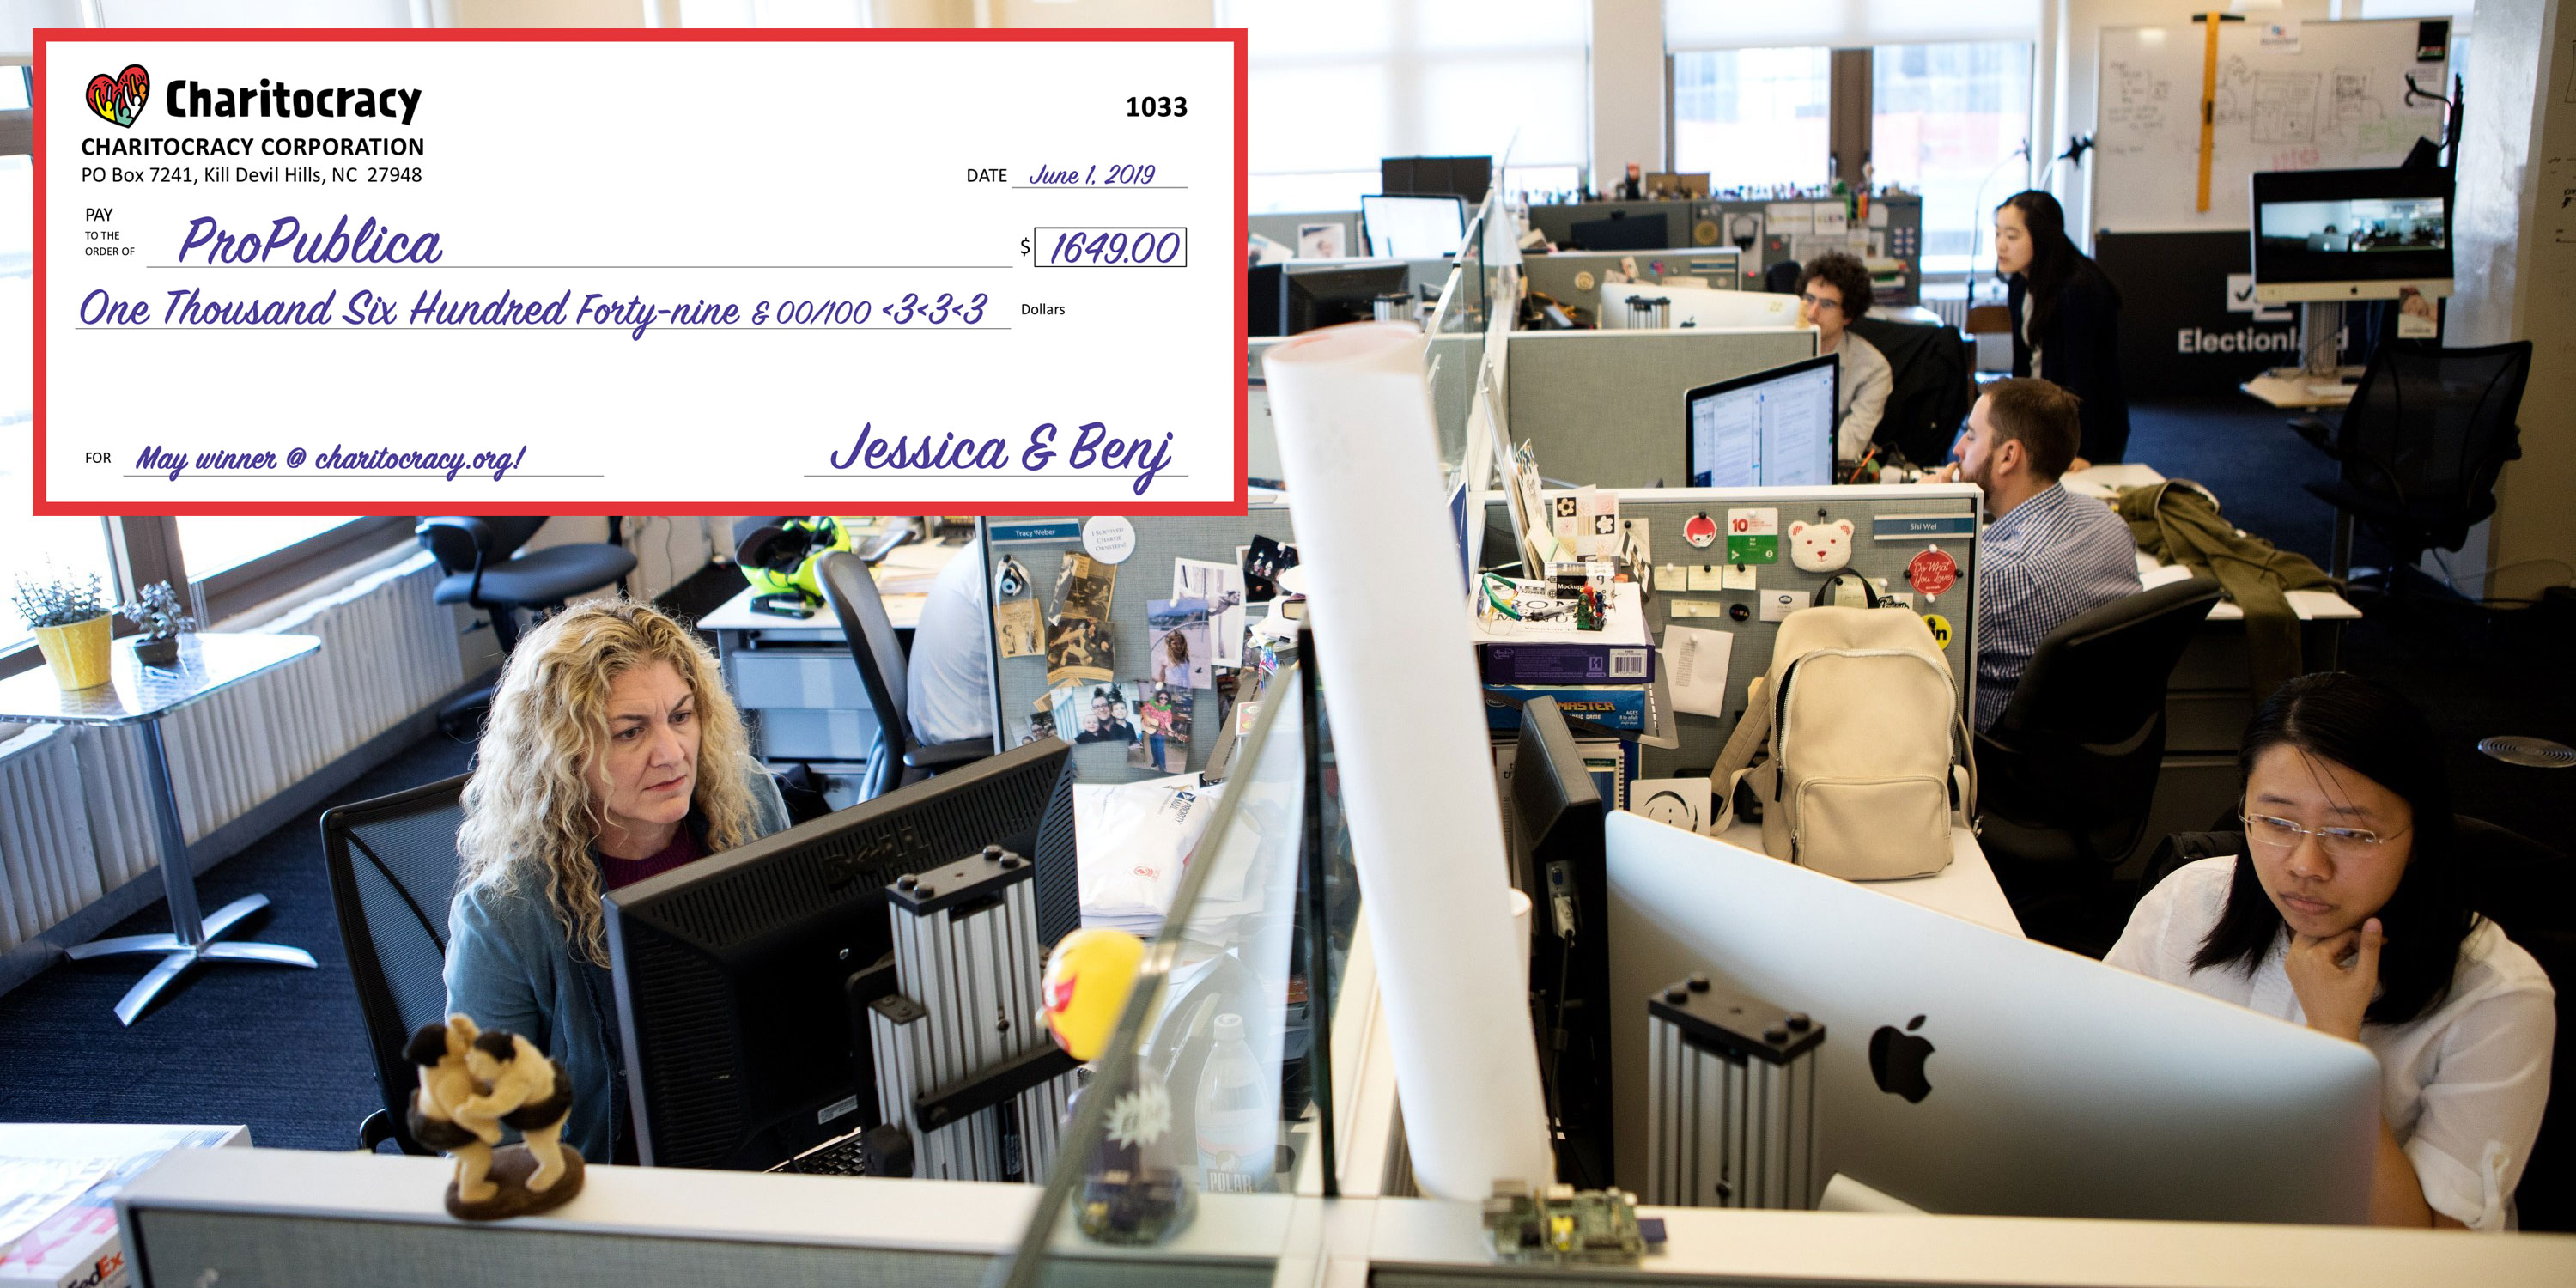 Charitocracy's 33rd check to May winner ProPublica for $1649